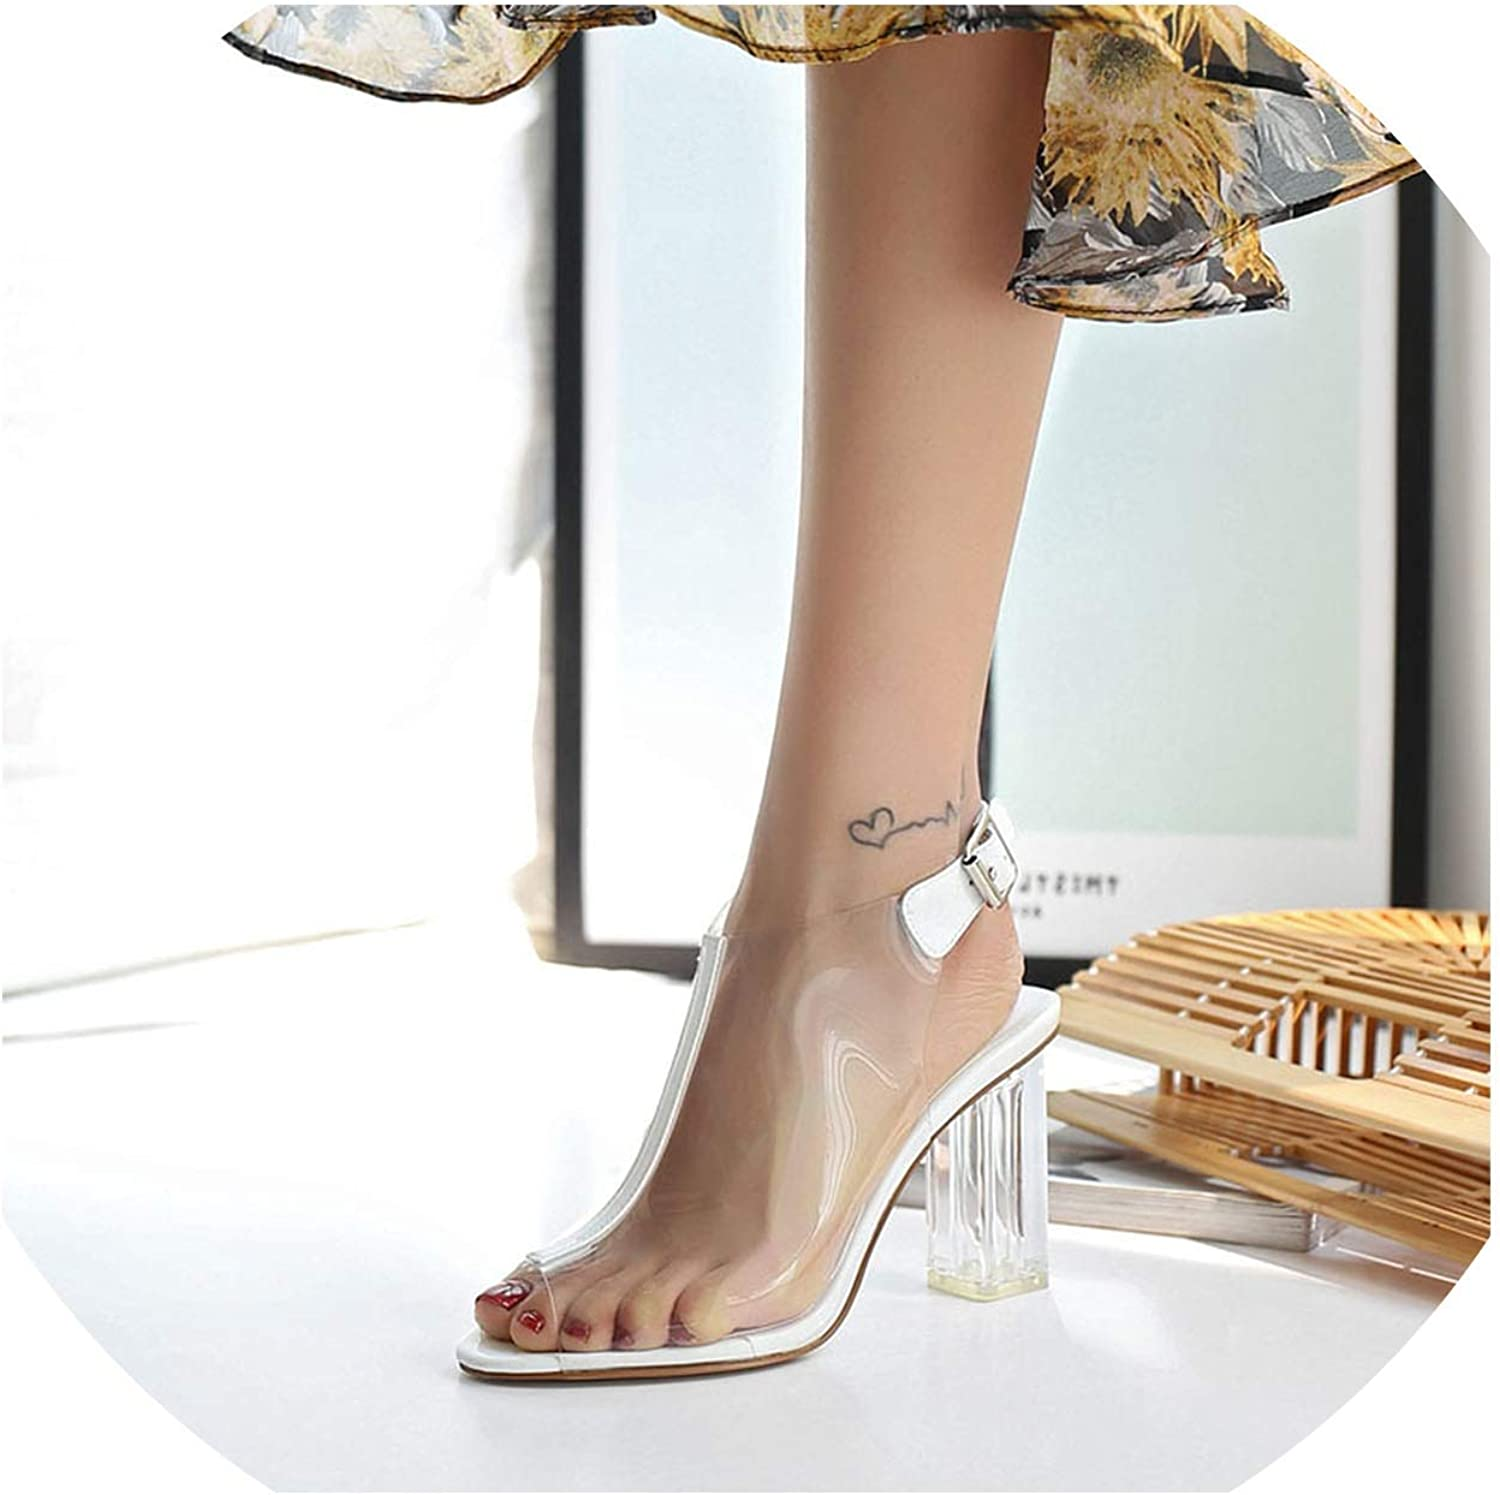 Summer Gladiator Sandals Women Thick High Heels PVC Transparent Peep Toe Sandals Sexy Party Office Dress shoes